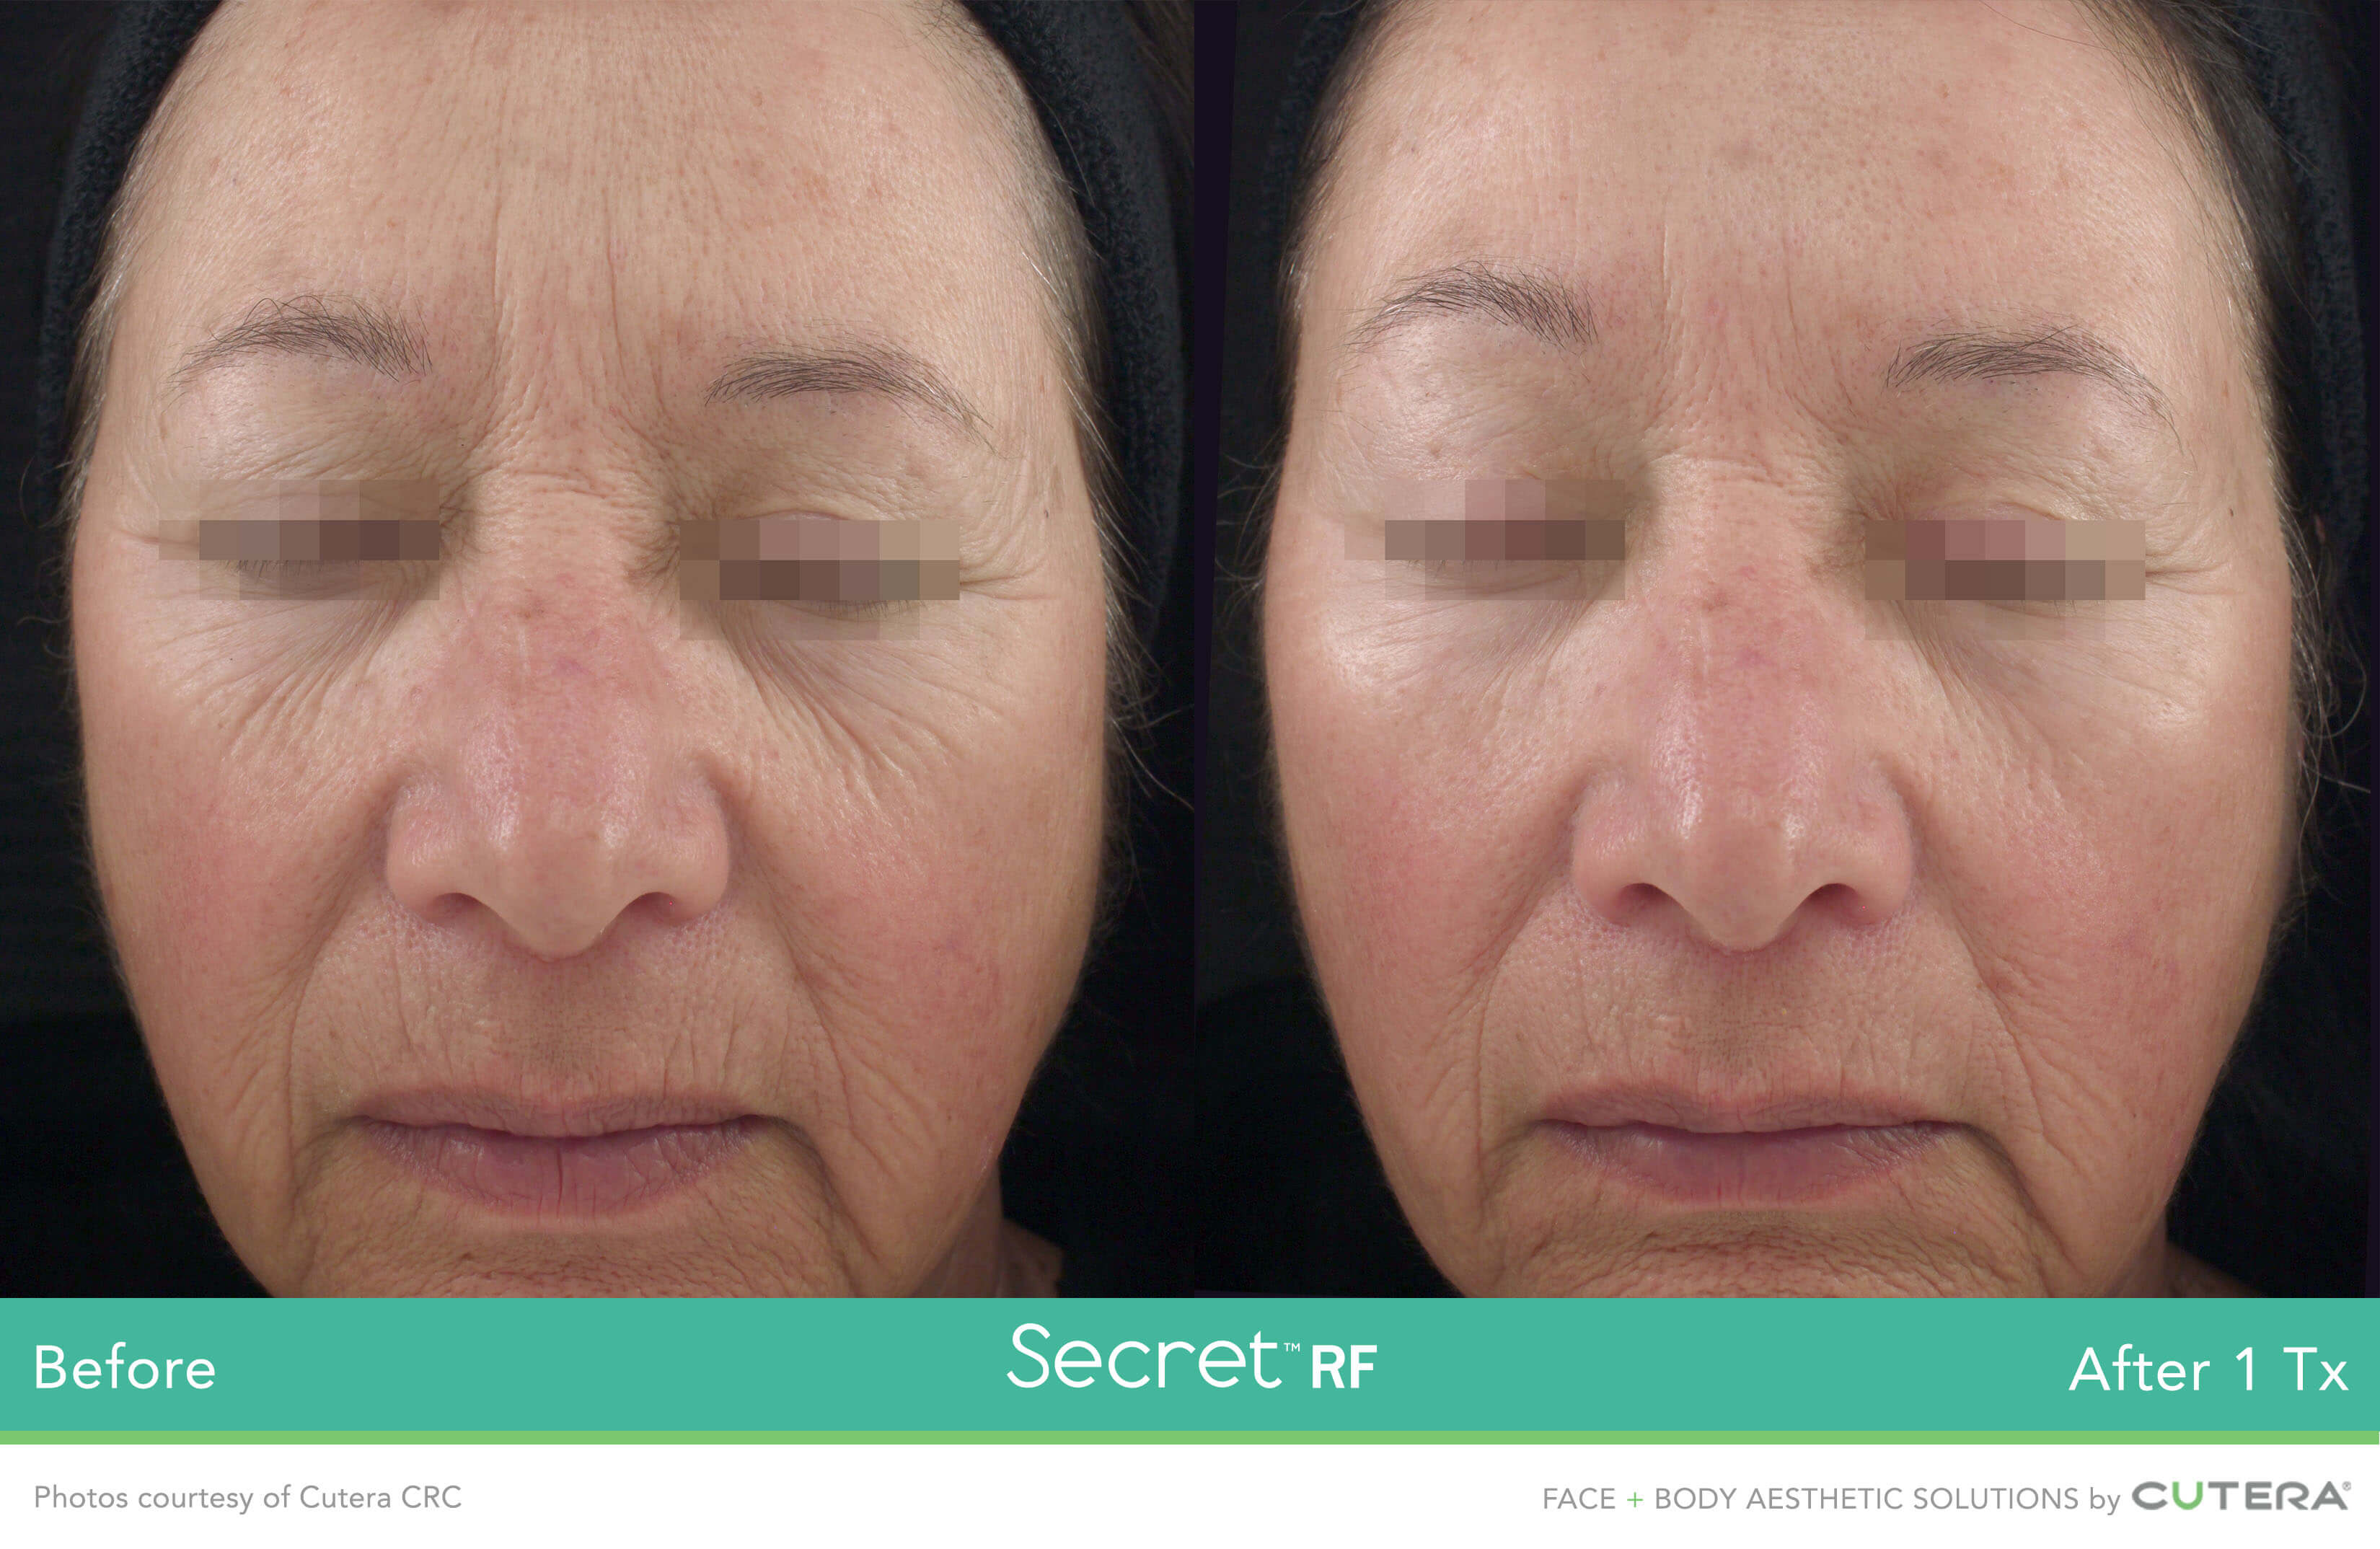 Skin resurfacing before and after on the face using the Secret RF MicroNeedling device.